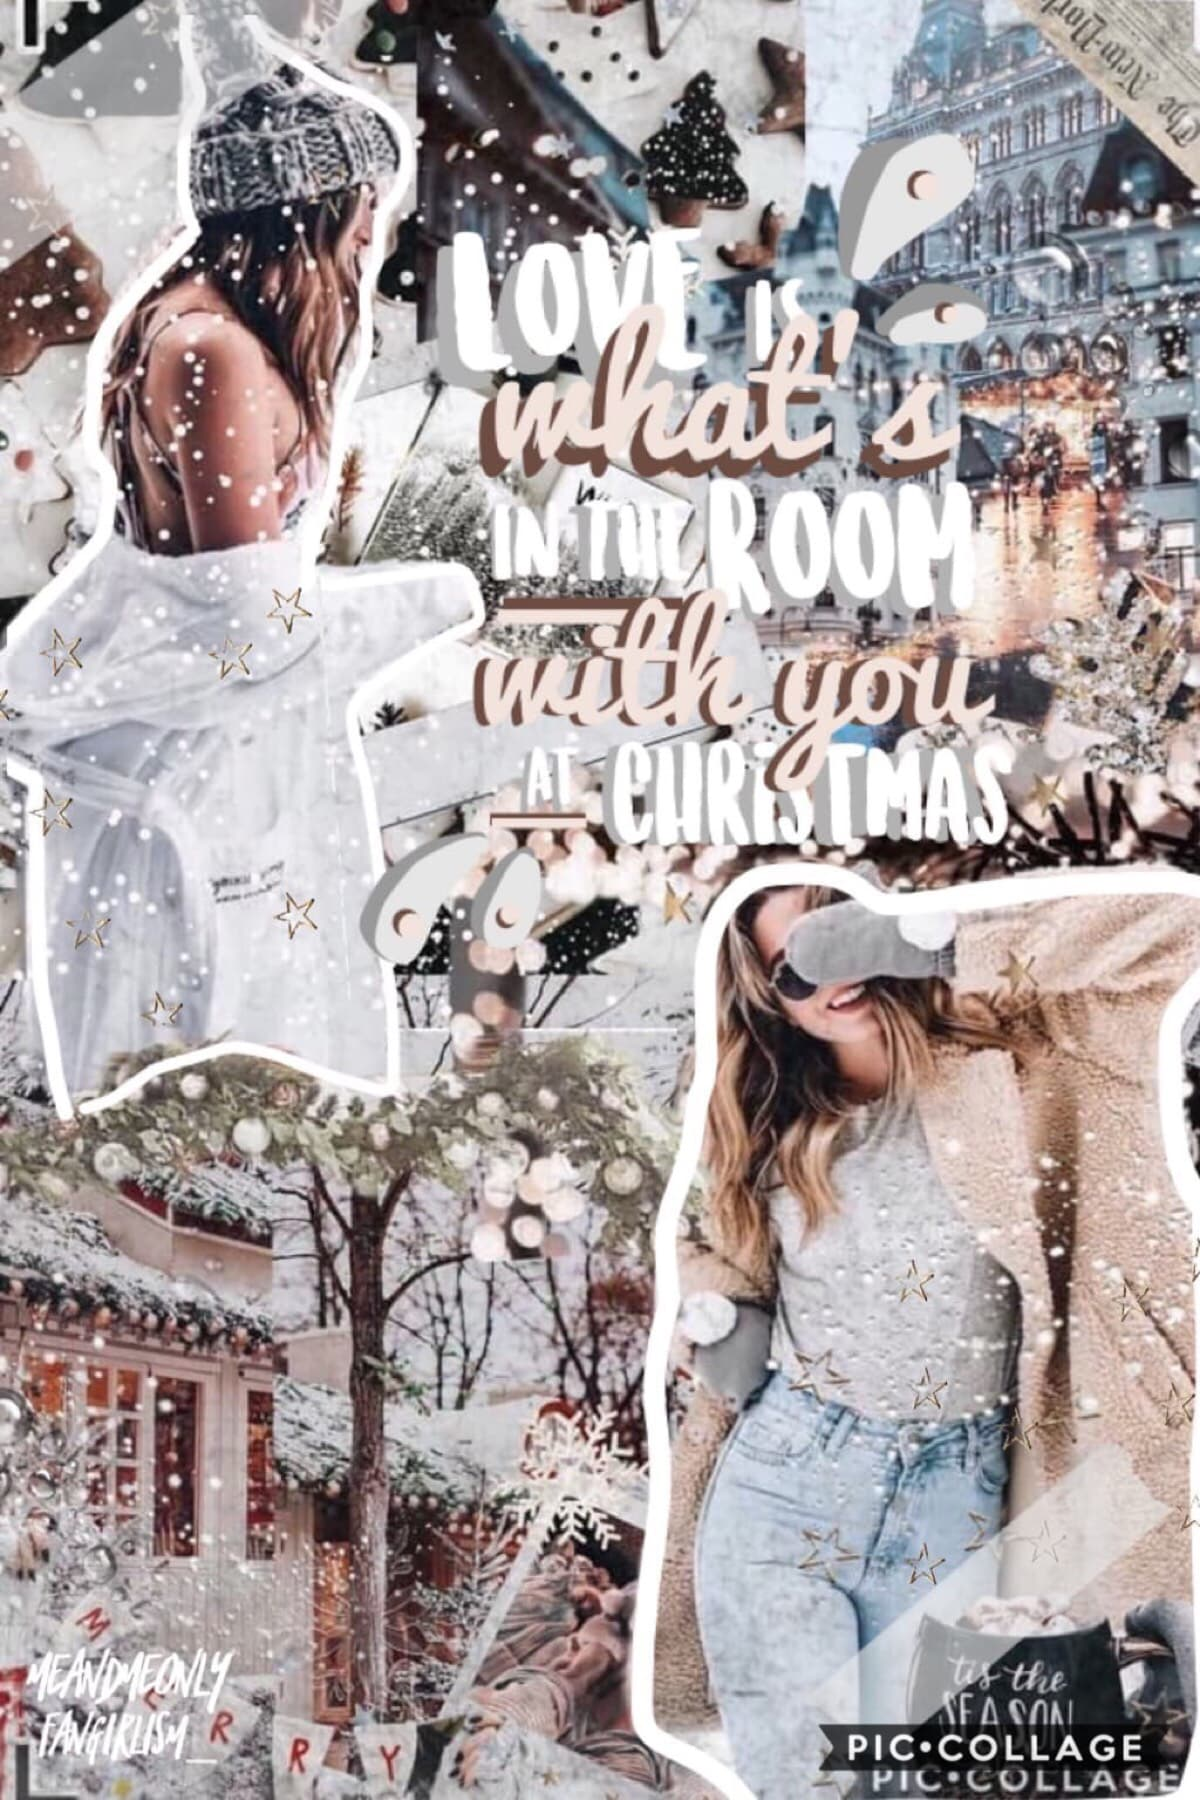 collab with the amazing and talented @Fangirlism_ she did the absolutely stunning text!! loveeee💞💞 also peeps please enter my contest or I'll have to self advertise lol and I know heaps of people hate self advertising so apologies in advance☺️😖💘